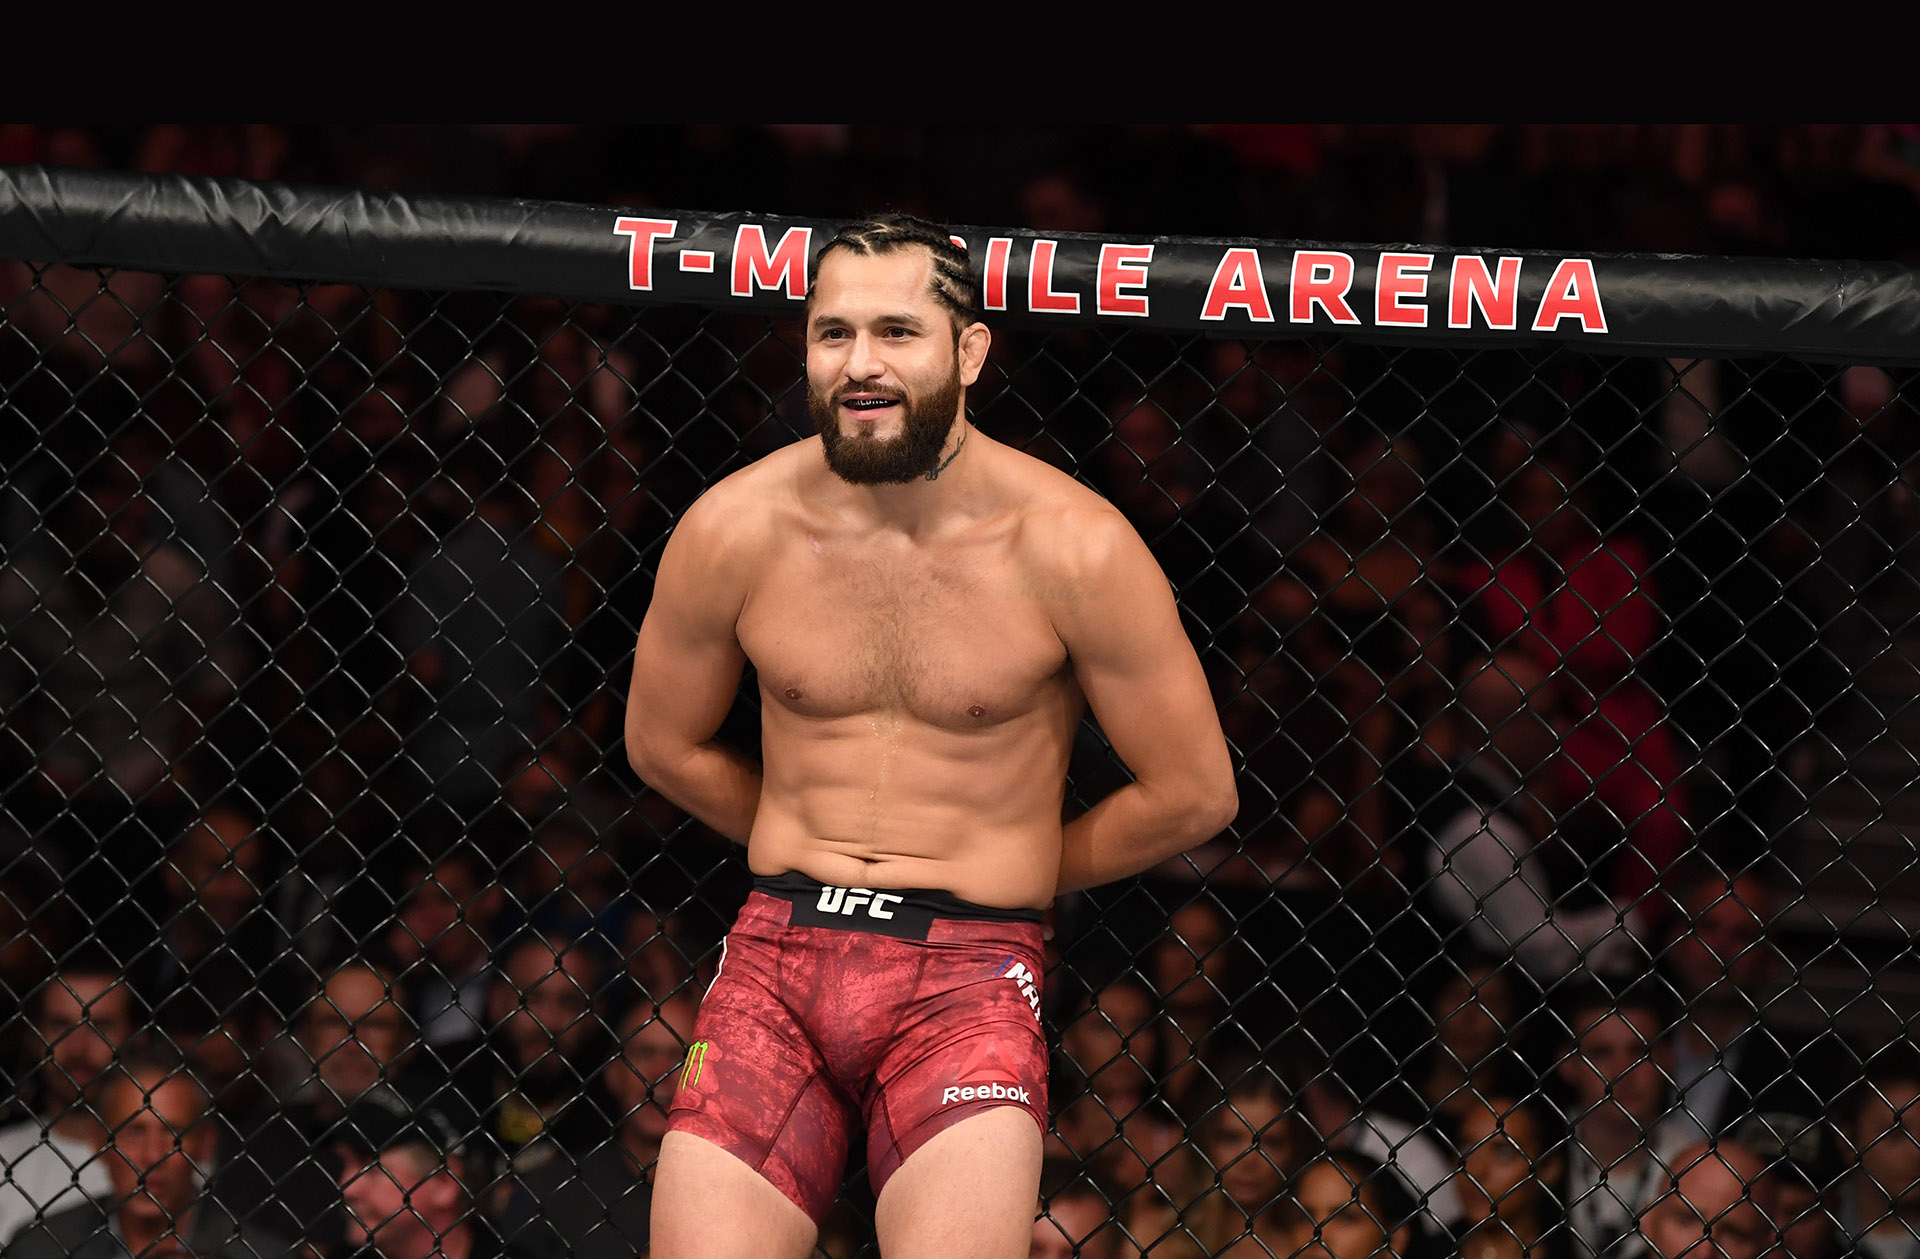 Jorge Masvidal rests against the cage following his welterweight fight during the UFC 239 event at T-Mobile Arena on July 6, 2019 in Las Vegas, Nevada. (Photo by Josh Hedges/Zuffa LLC)